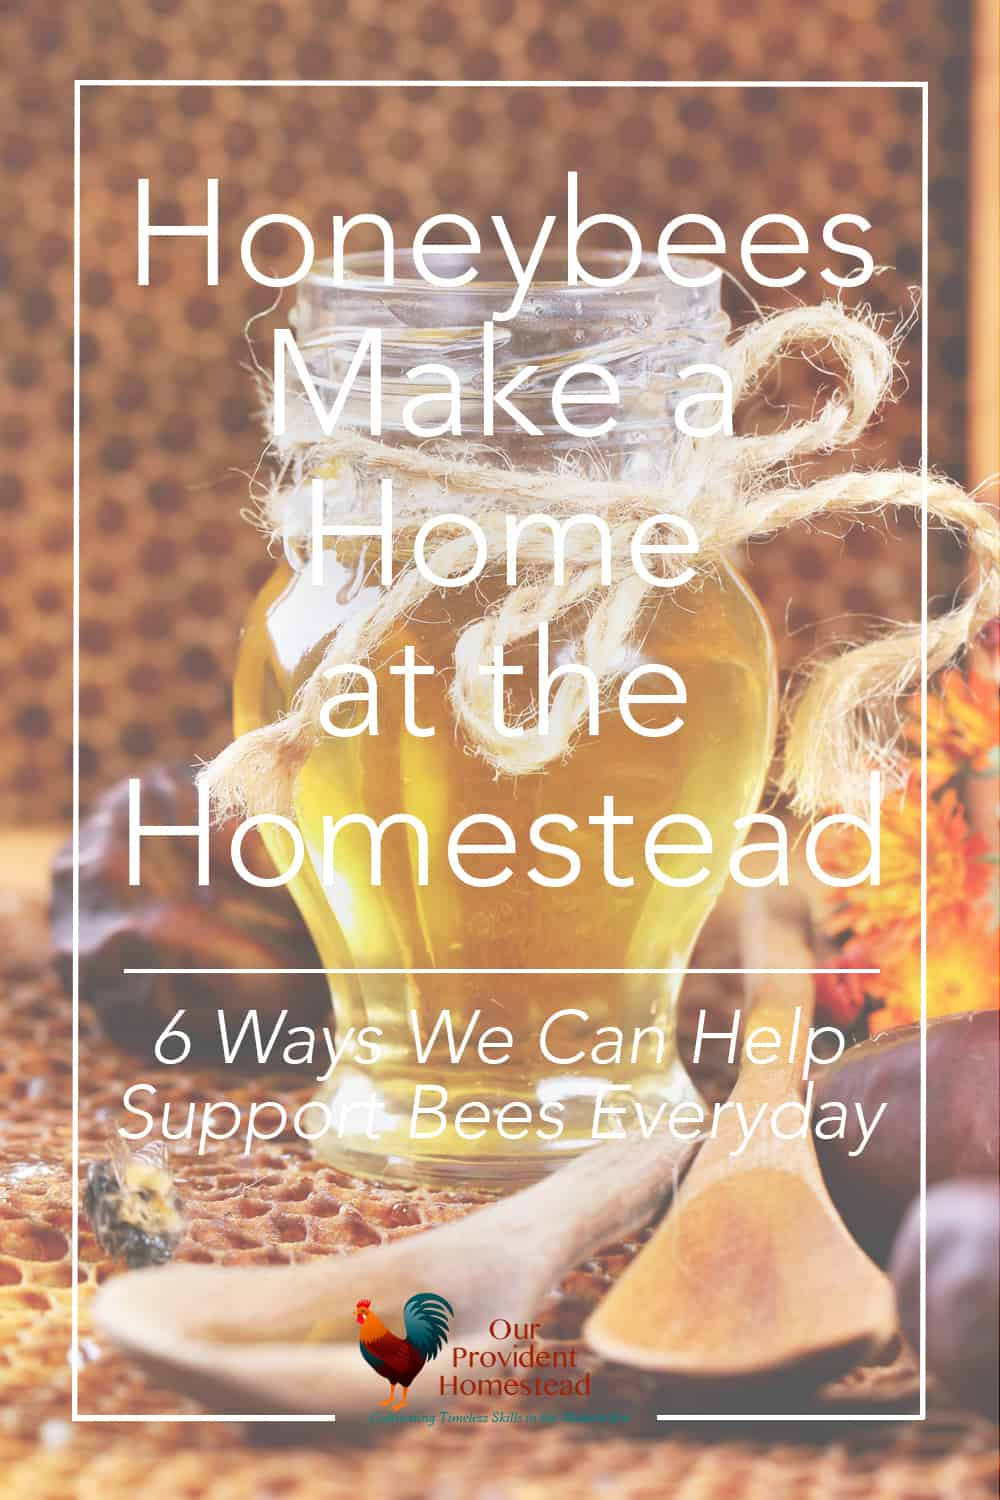 Do you worry about the honeybees? We discuss why we became beekeepers and 6 ways we can help support bees everyday at home. Protect bees | beekeeping | Save bees